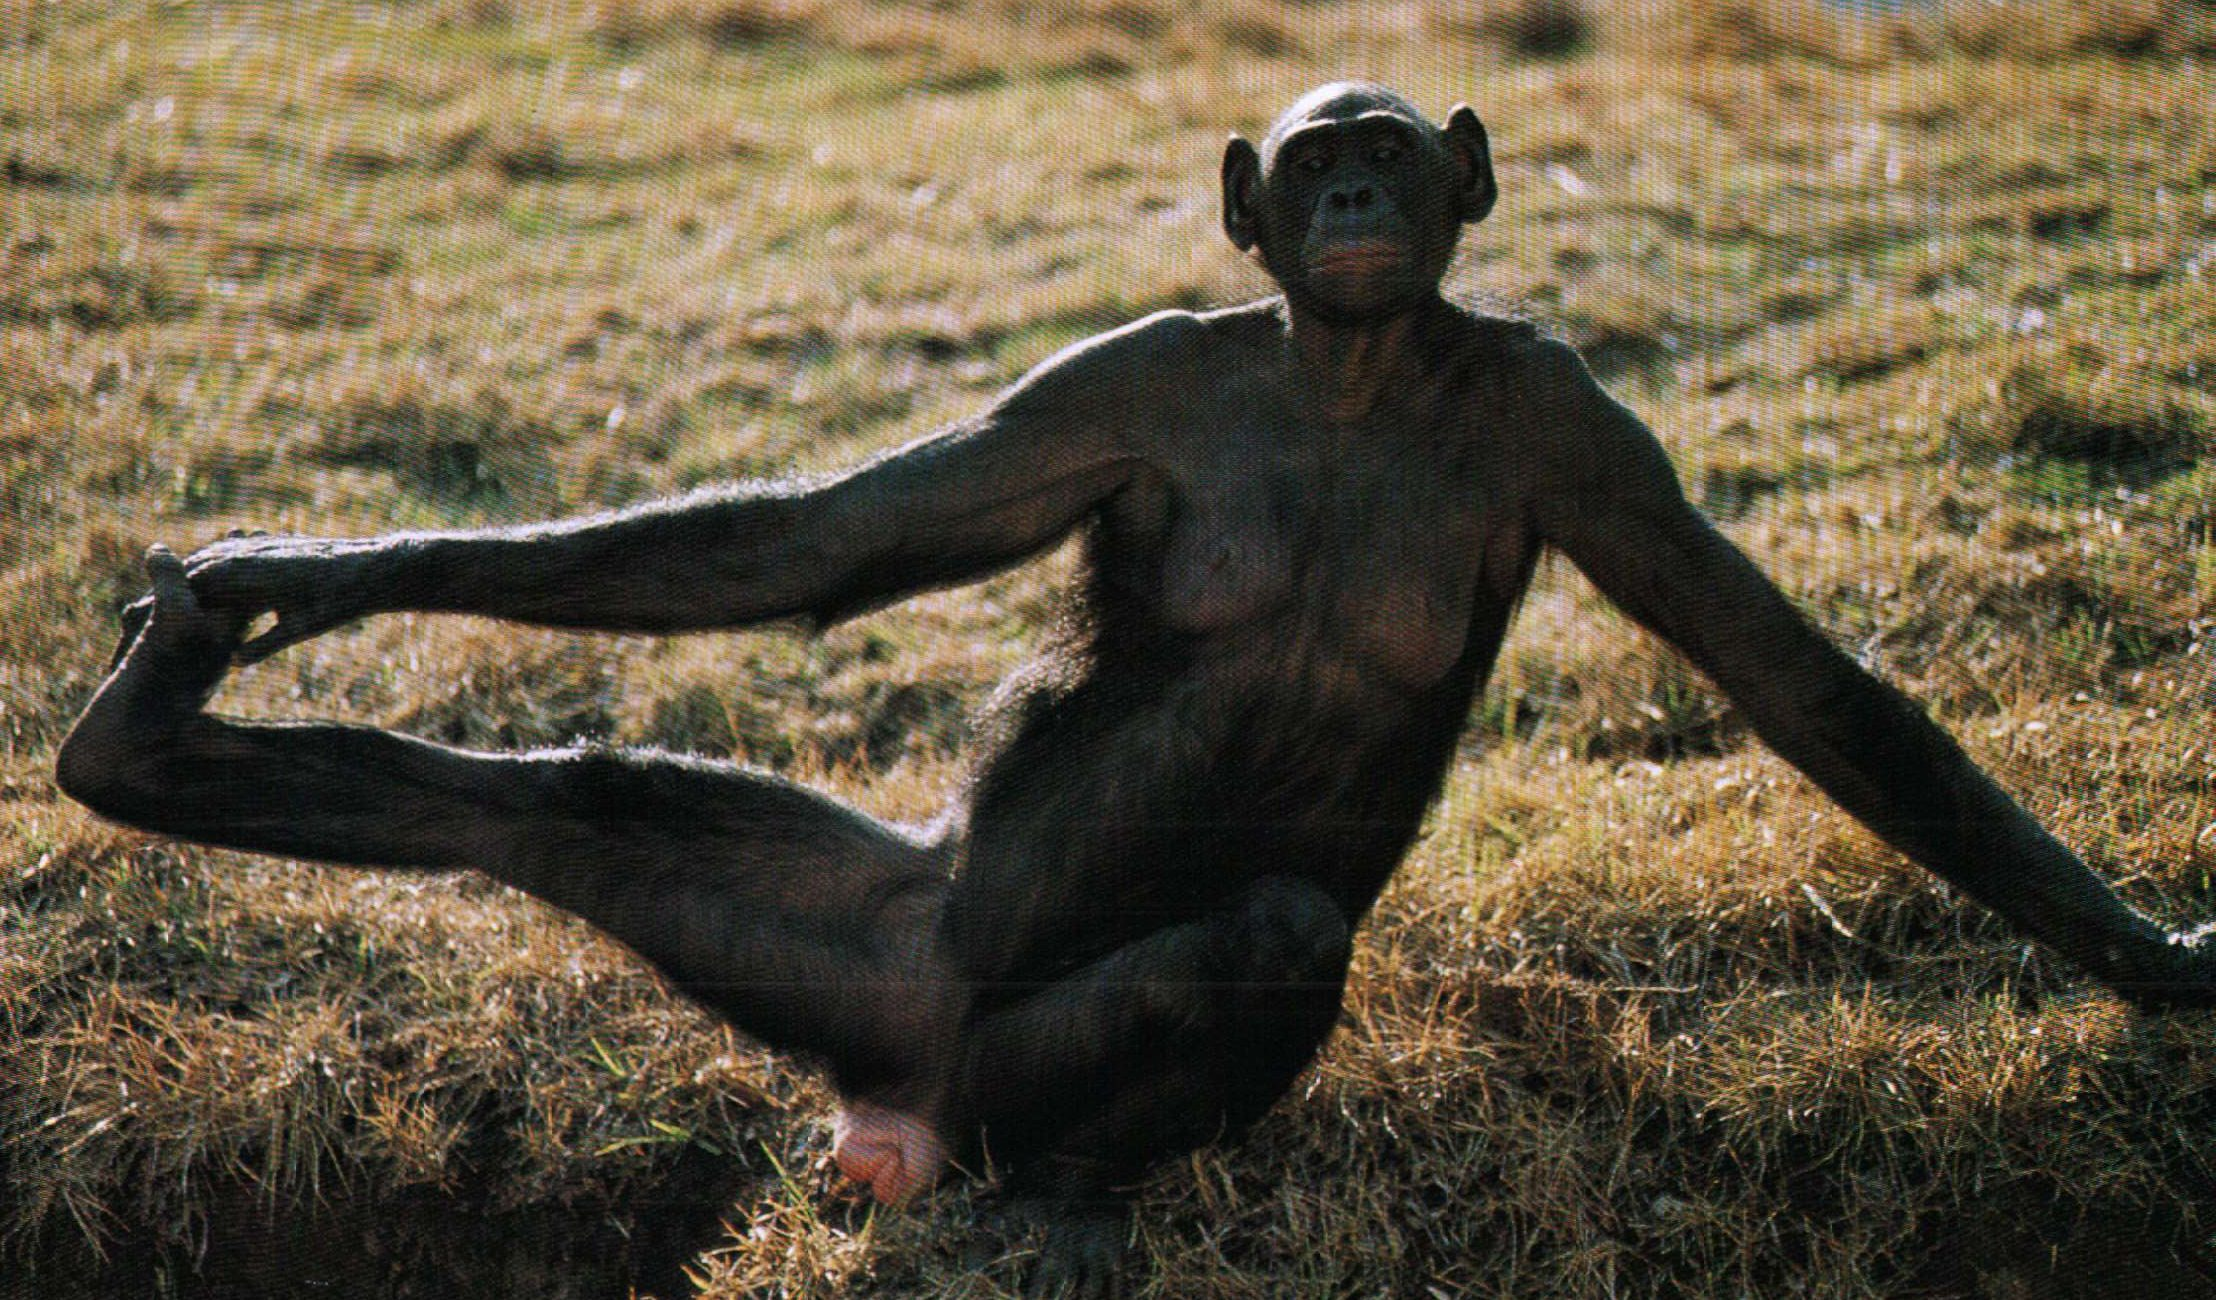 Shabani The Gorilla Is So Handsome Japanese Women Are Flocking To The Zoo To See Him